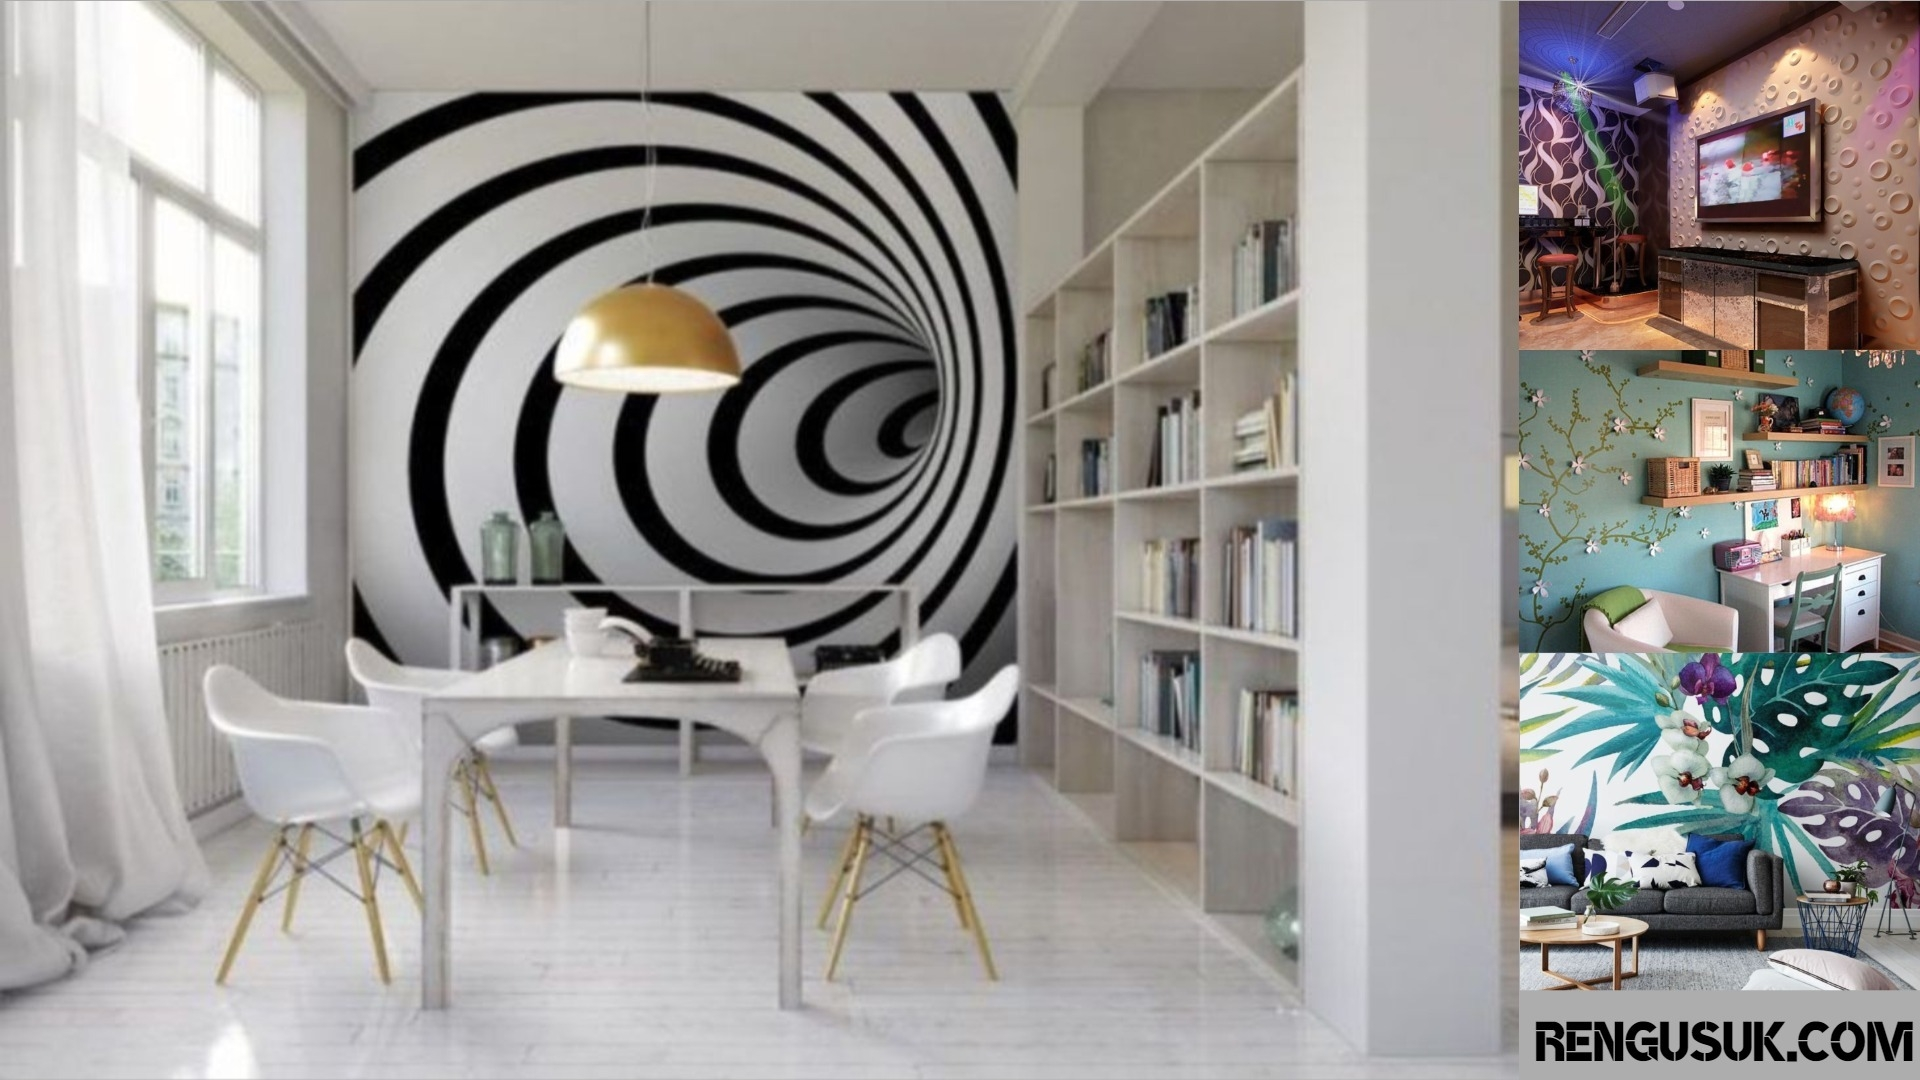 36 3d Wall Paint Design To Decorating Your House